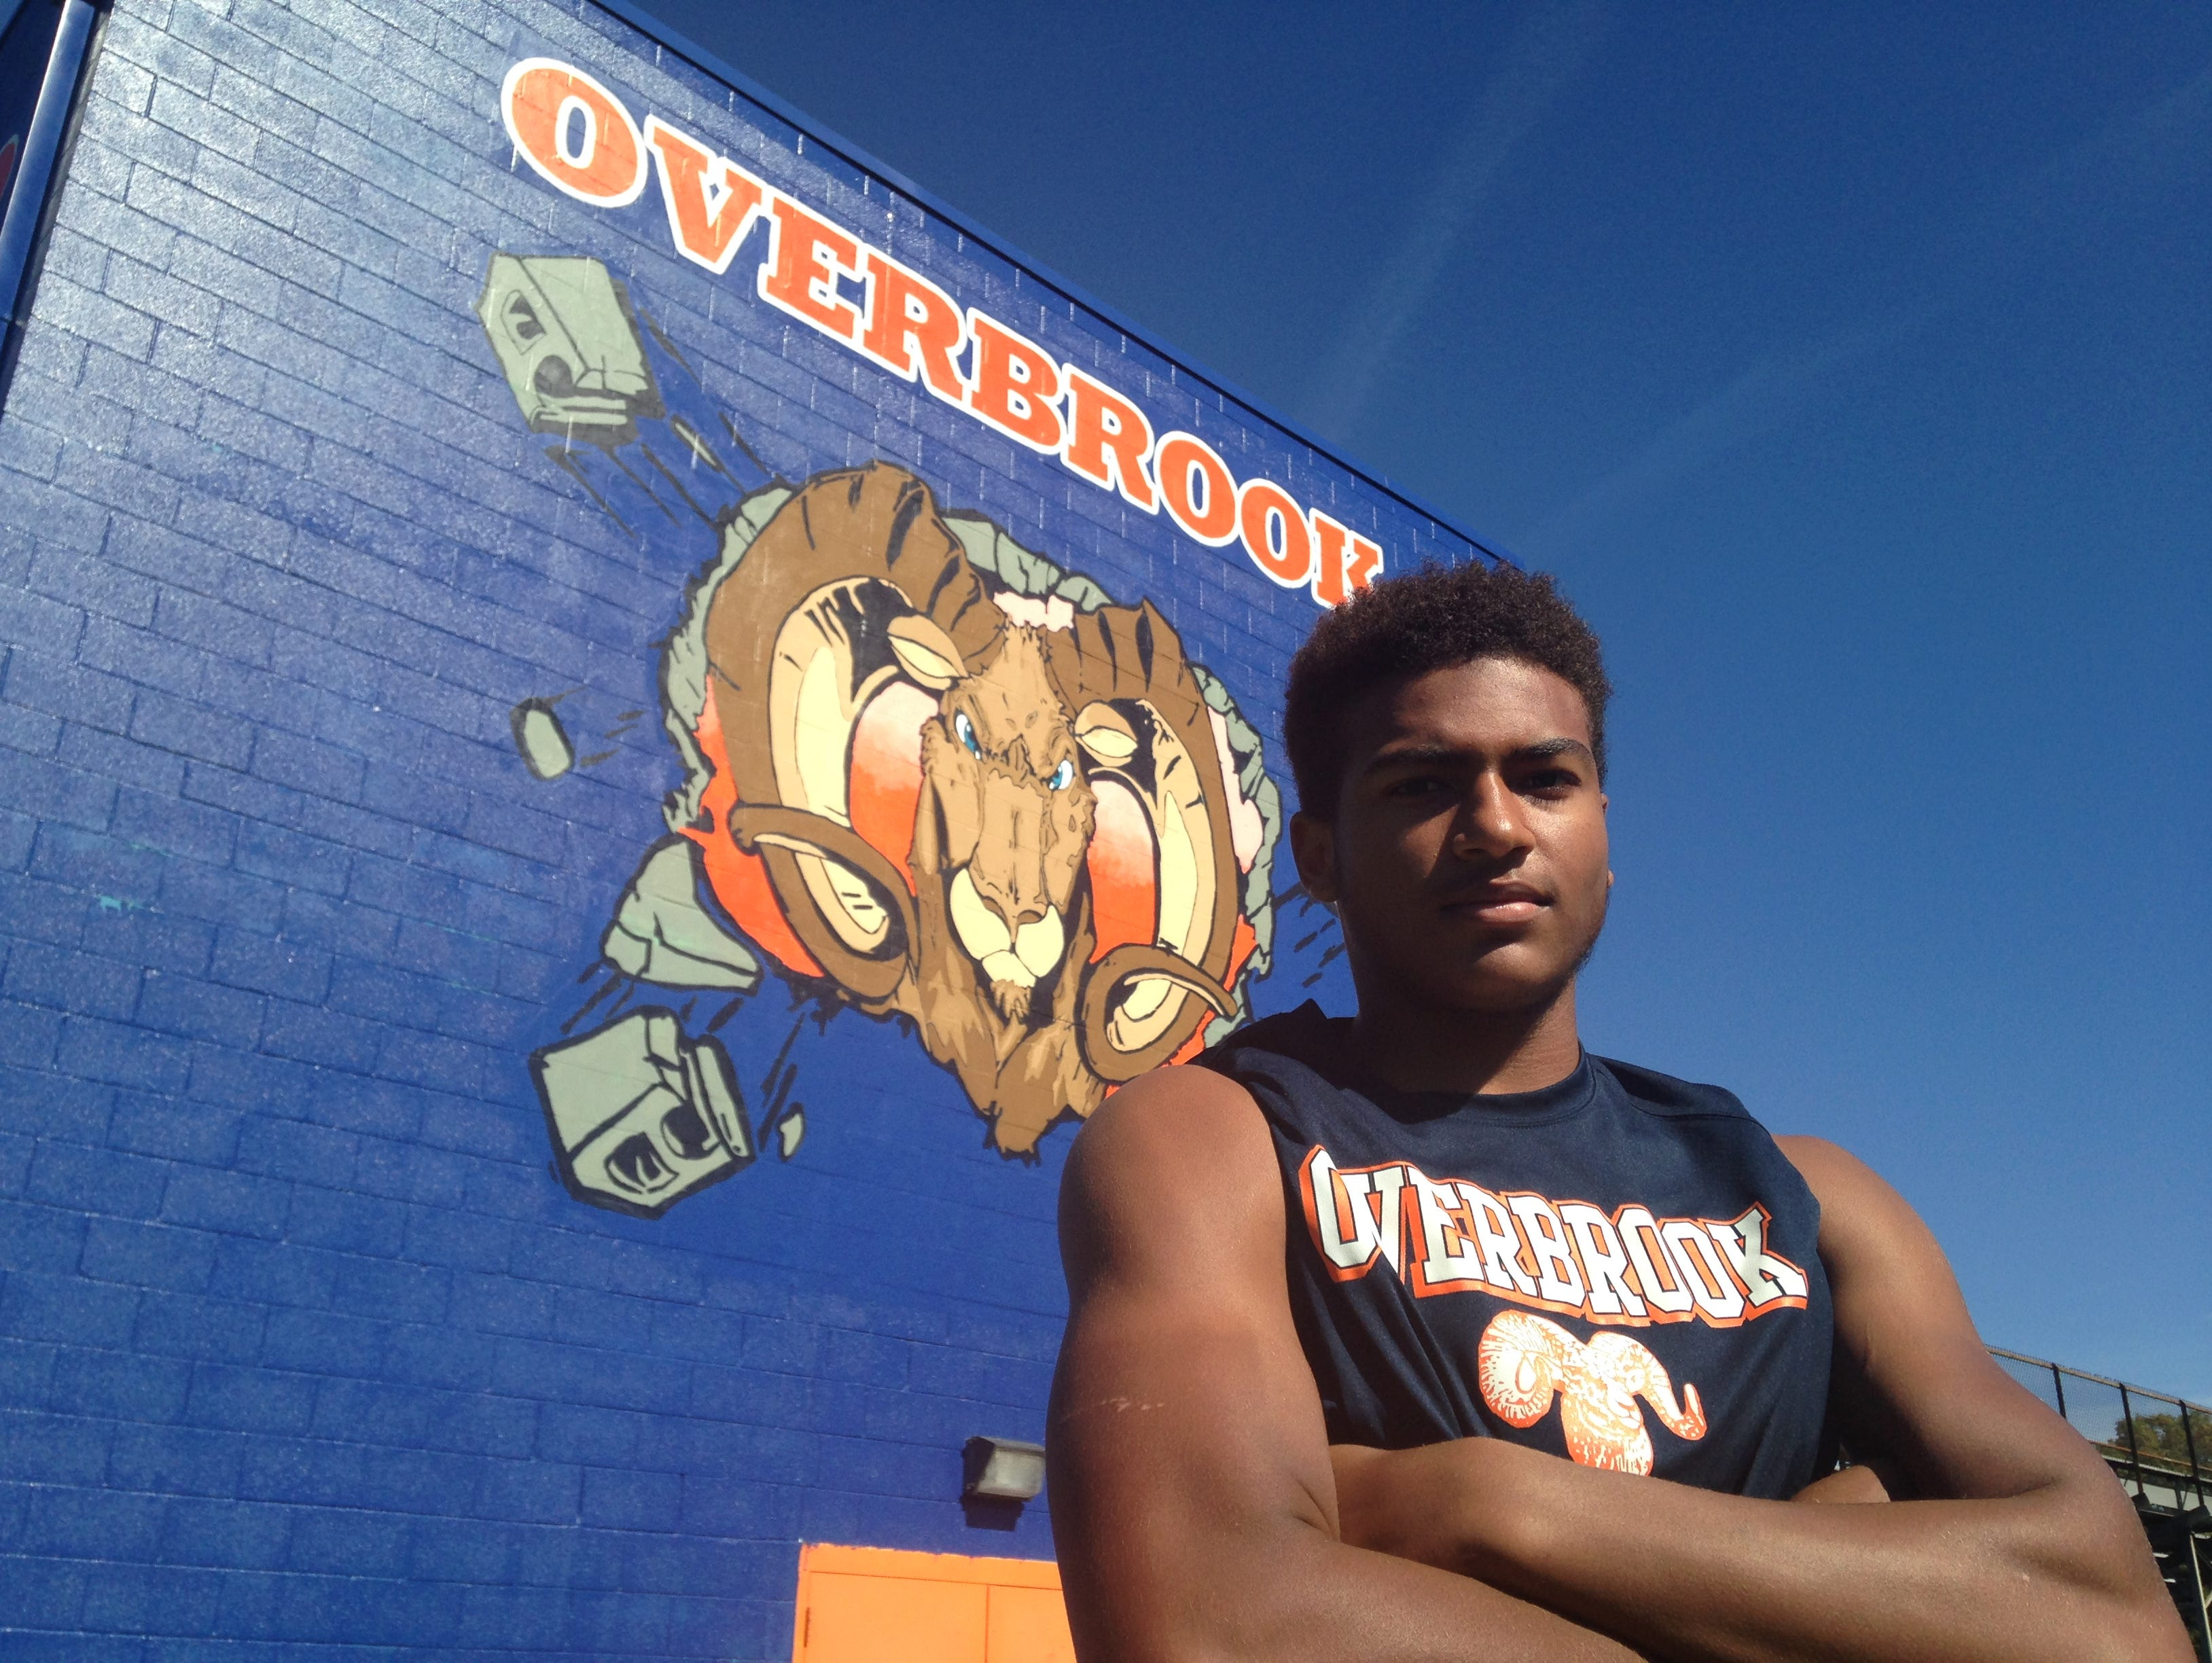 Tommy Wyatt has emerged the Overbrook's leader this season.